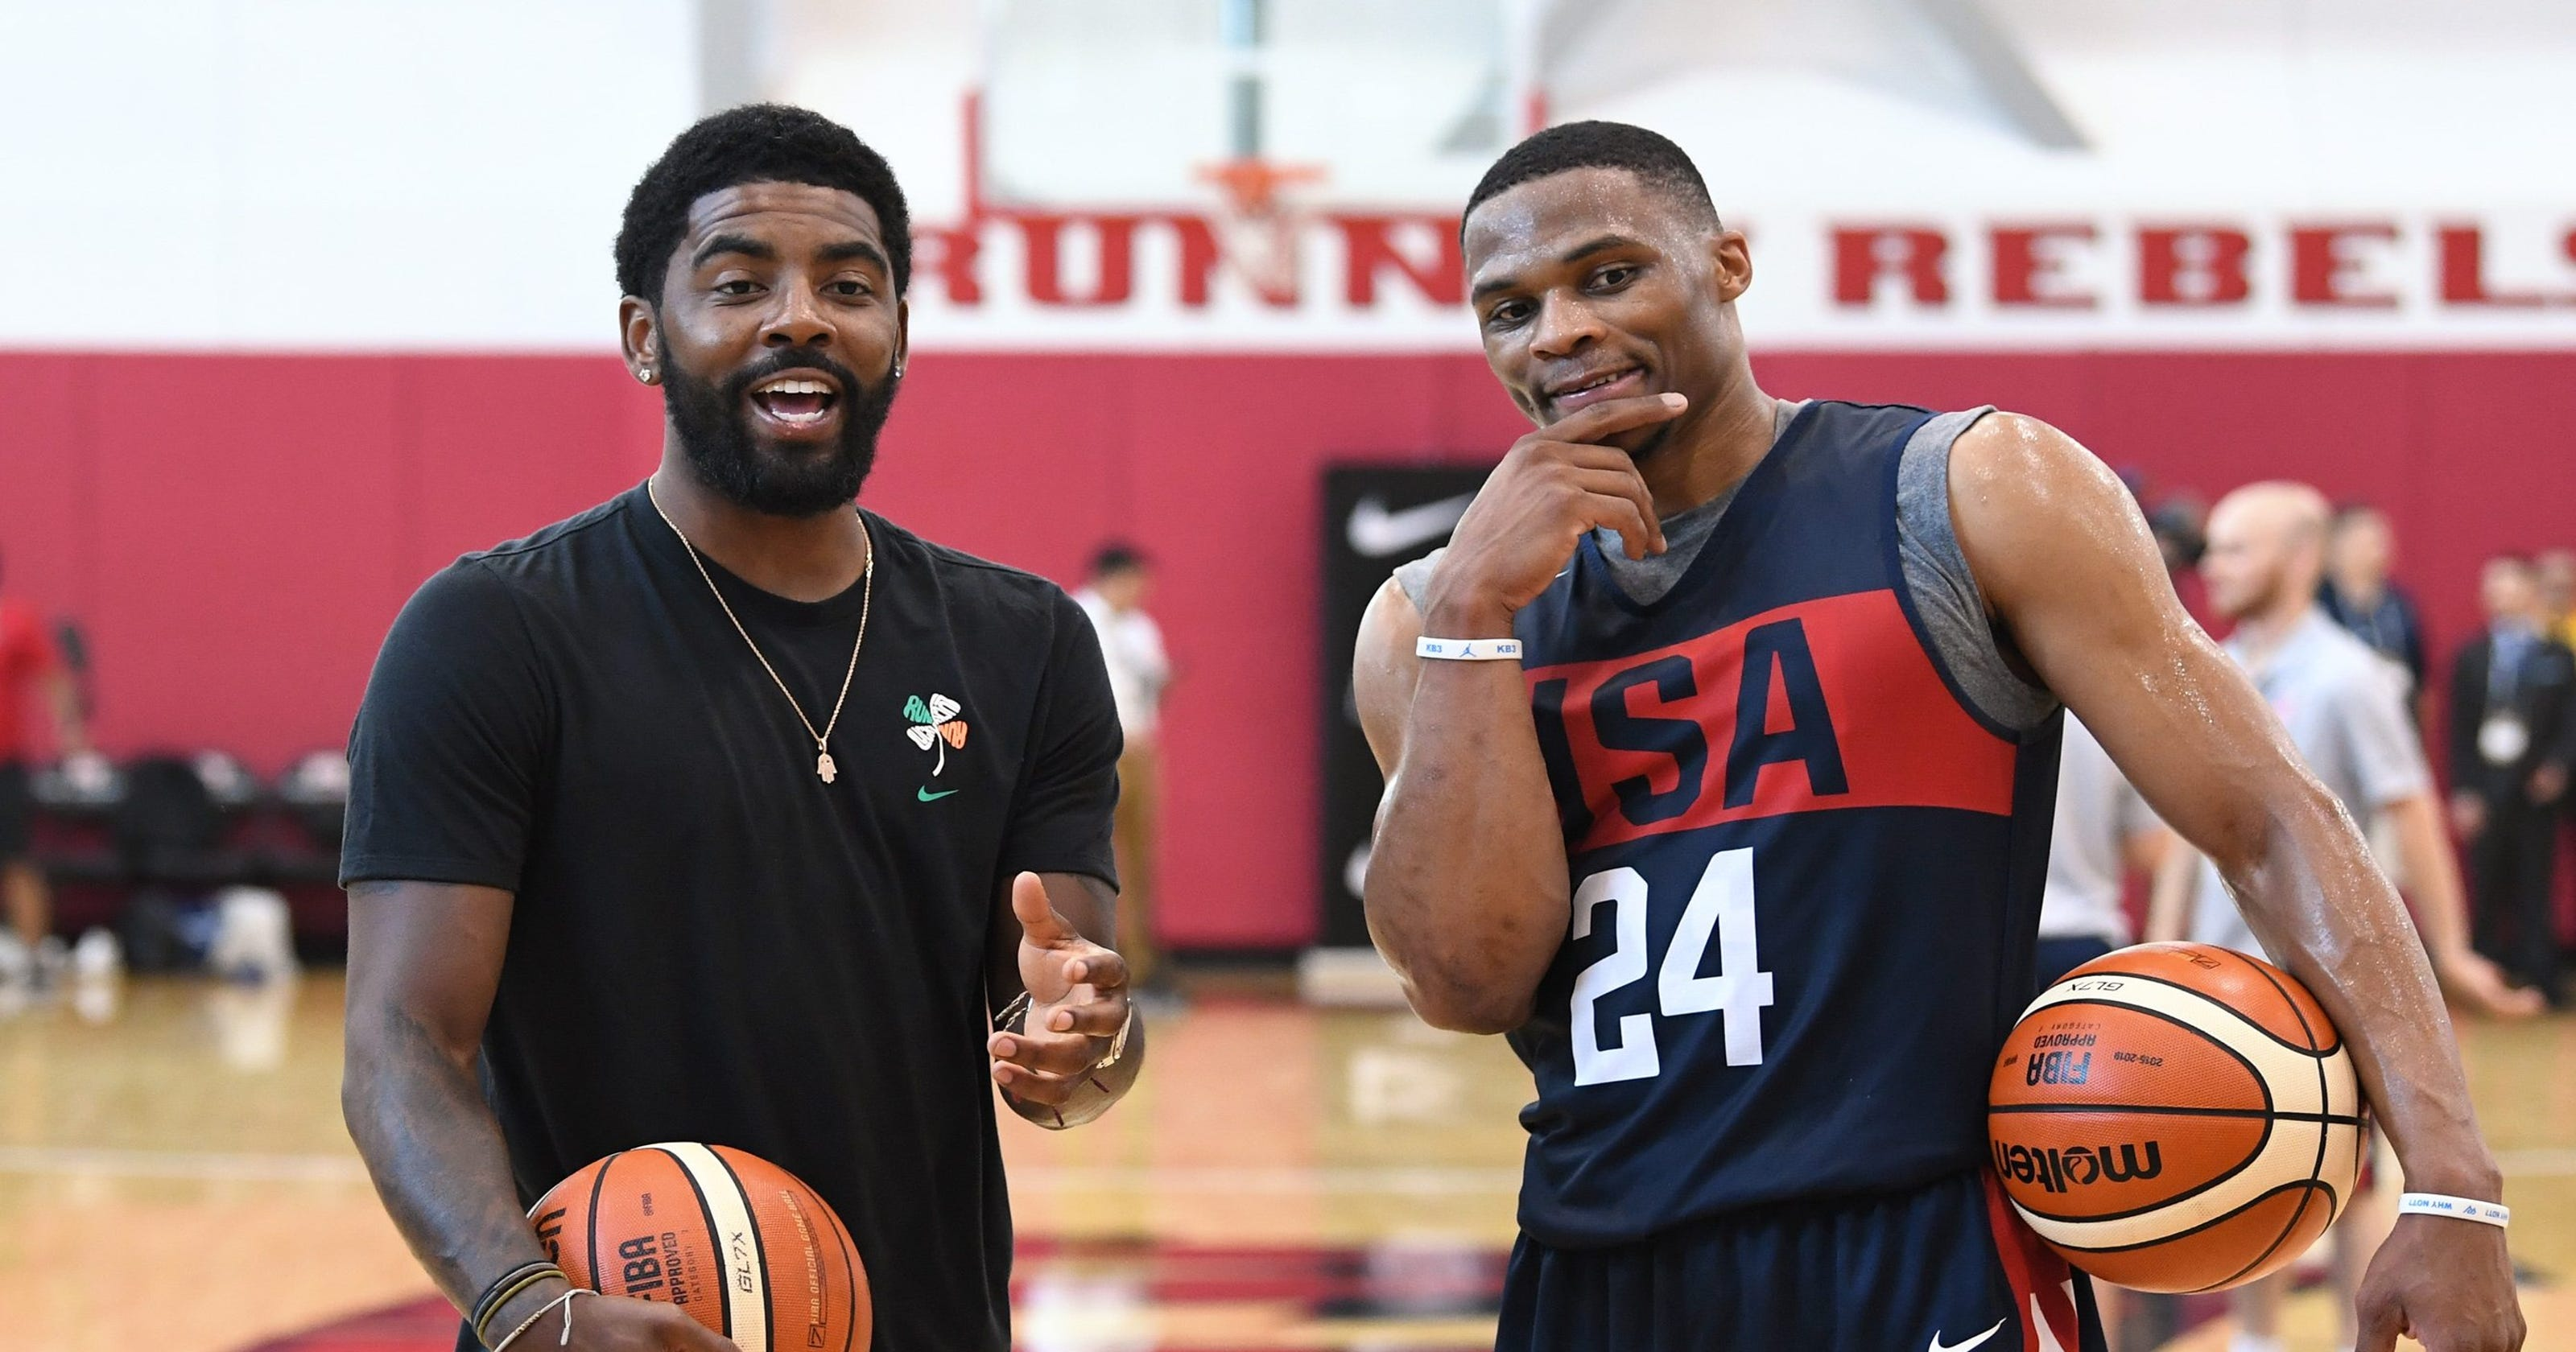 3a325ceb5c93 Kyrie Irving enjoyed watching USA Basketball players go 1-on-1